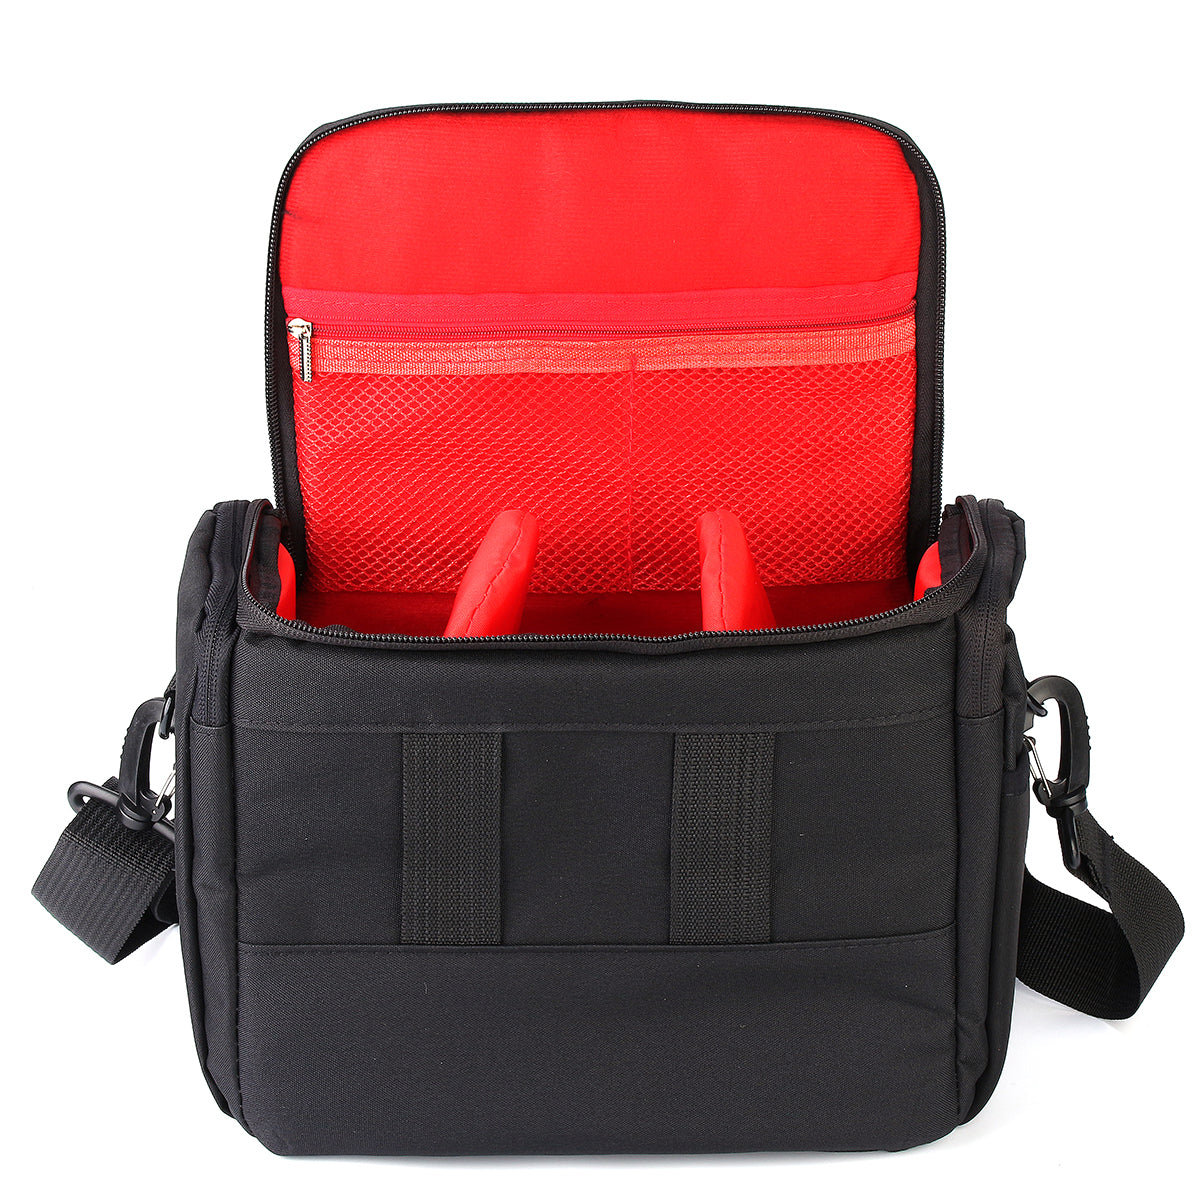 Universal Portable Waterproof DSLR Camera Shoulder Bag Case Nylon for Nikon for Canon for Sony